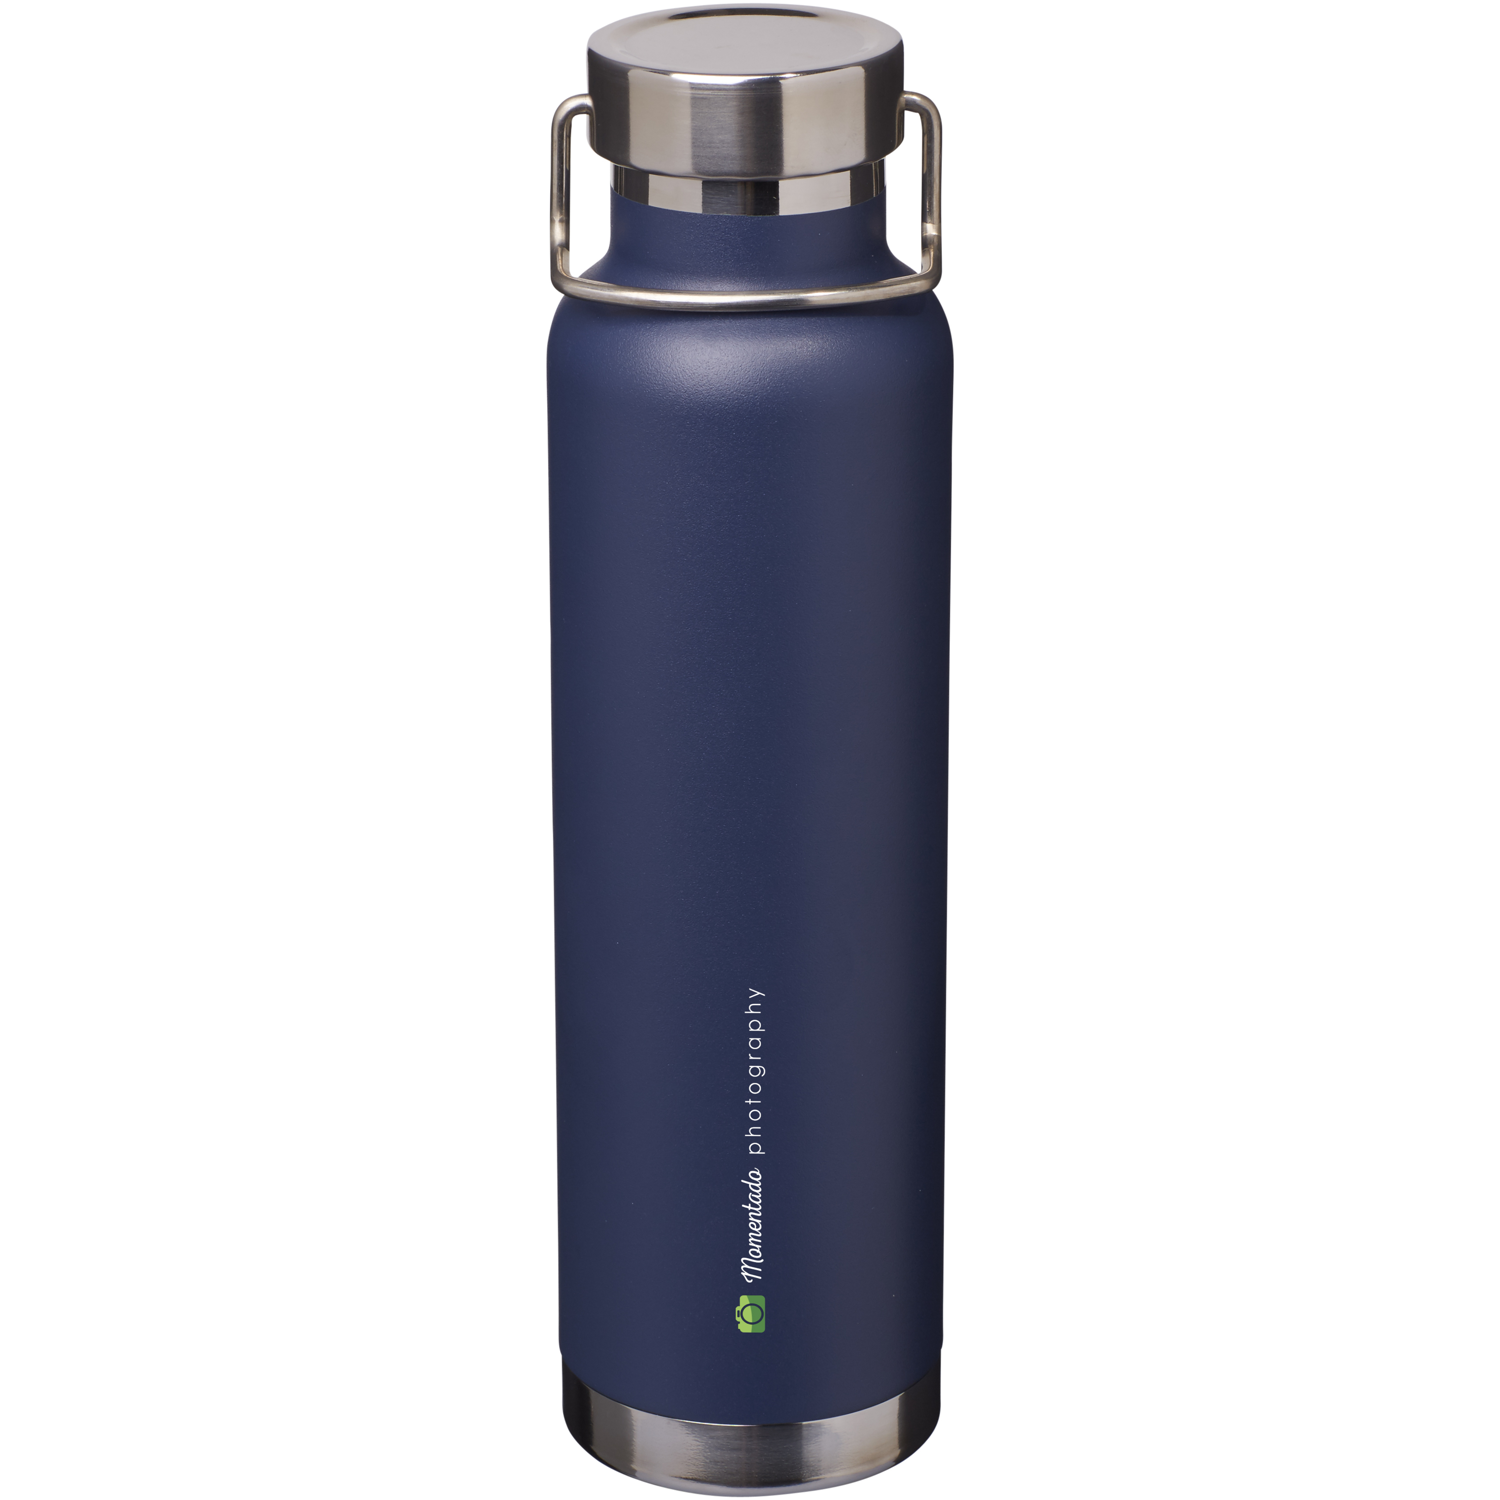 Insulated sport bottle